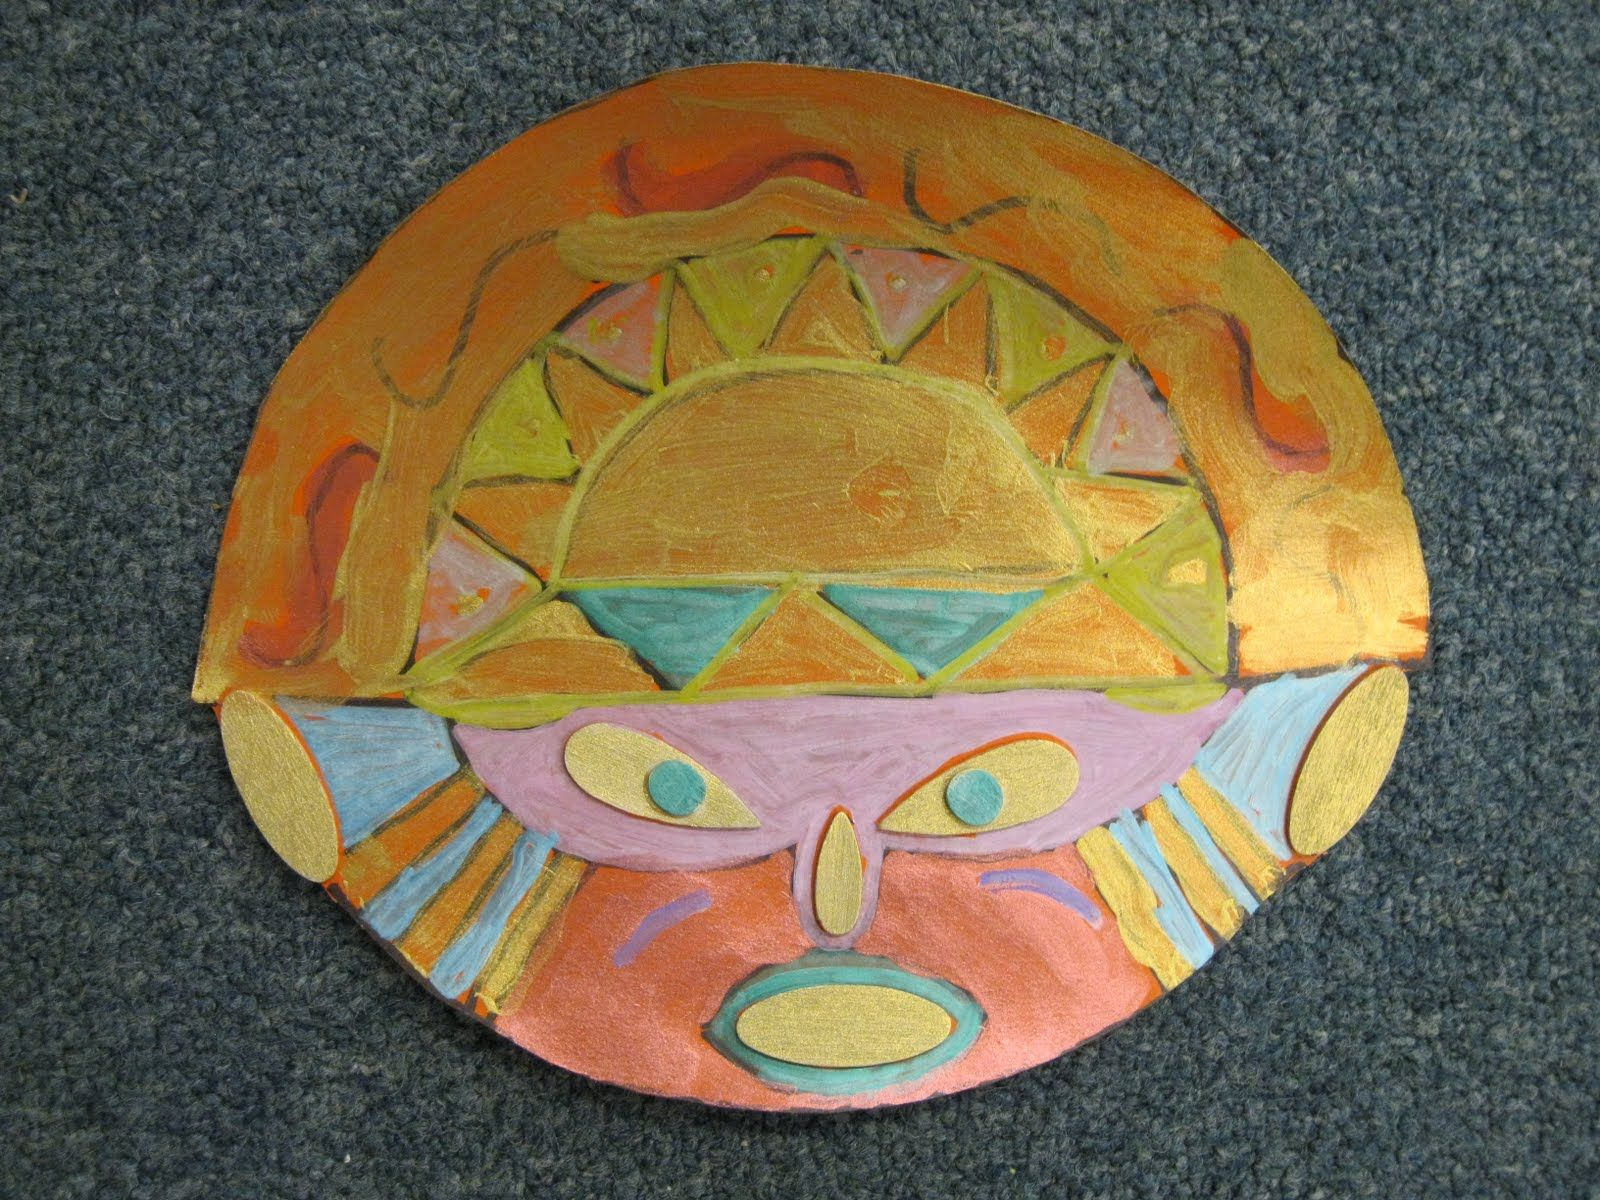 Inca Sun God Mask Art Pinterest Native American Projects And Choice